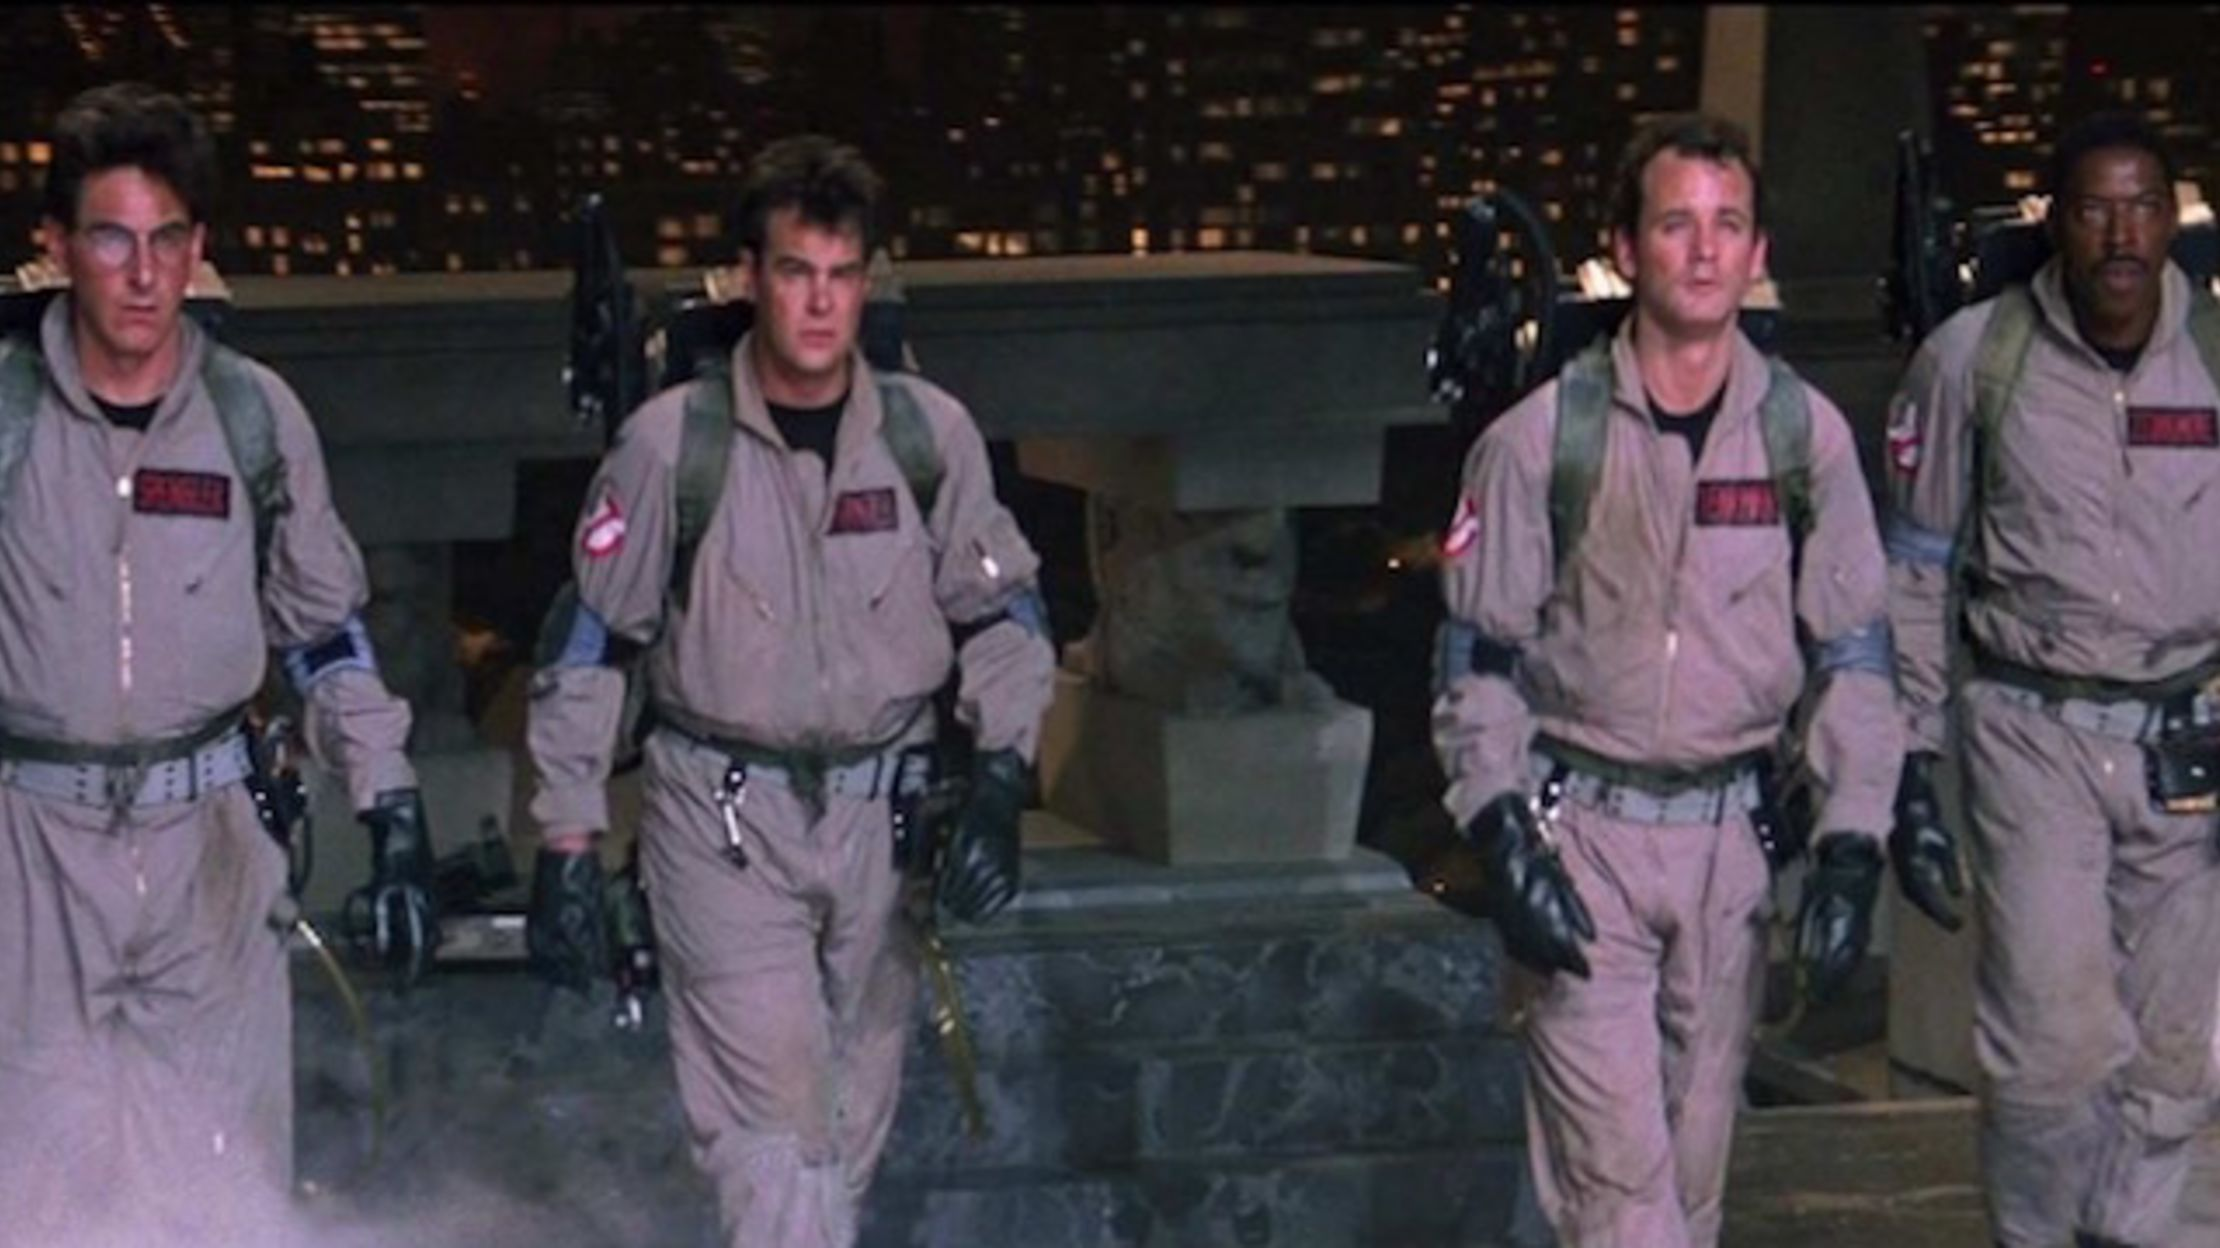 20 Things You Might Not Know About Ghostbusters Mental Floss